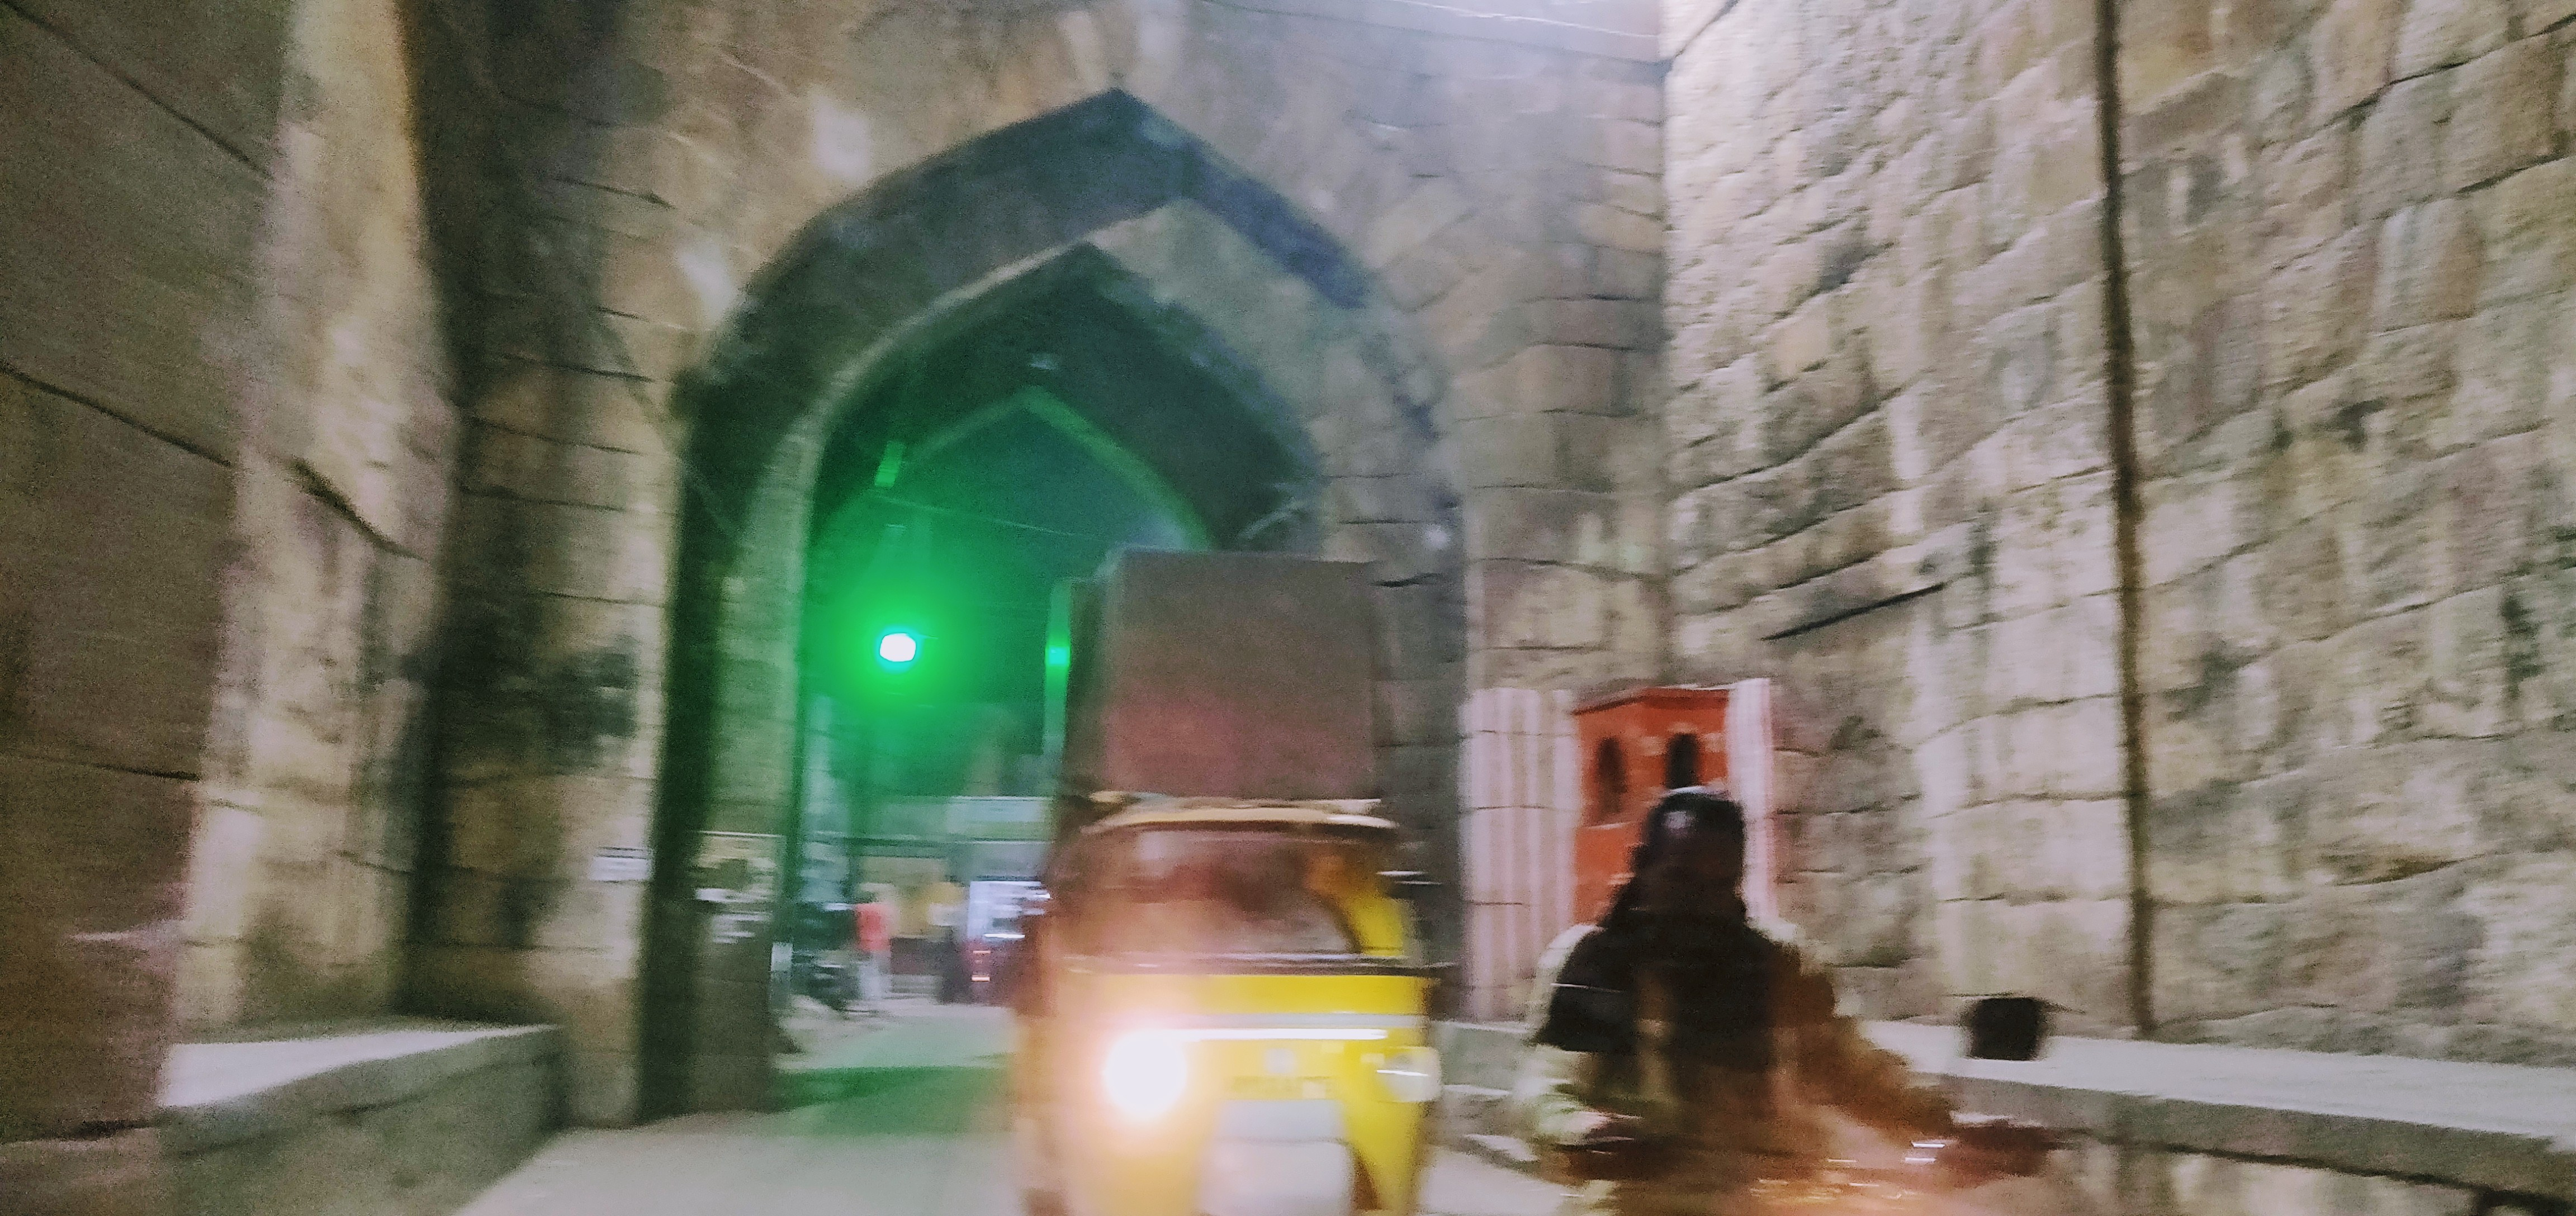 One of the exit points from the Golconda fort, through the old arched doorways, manned by traffic lights